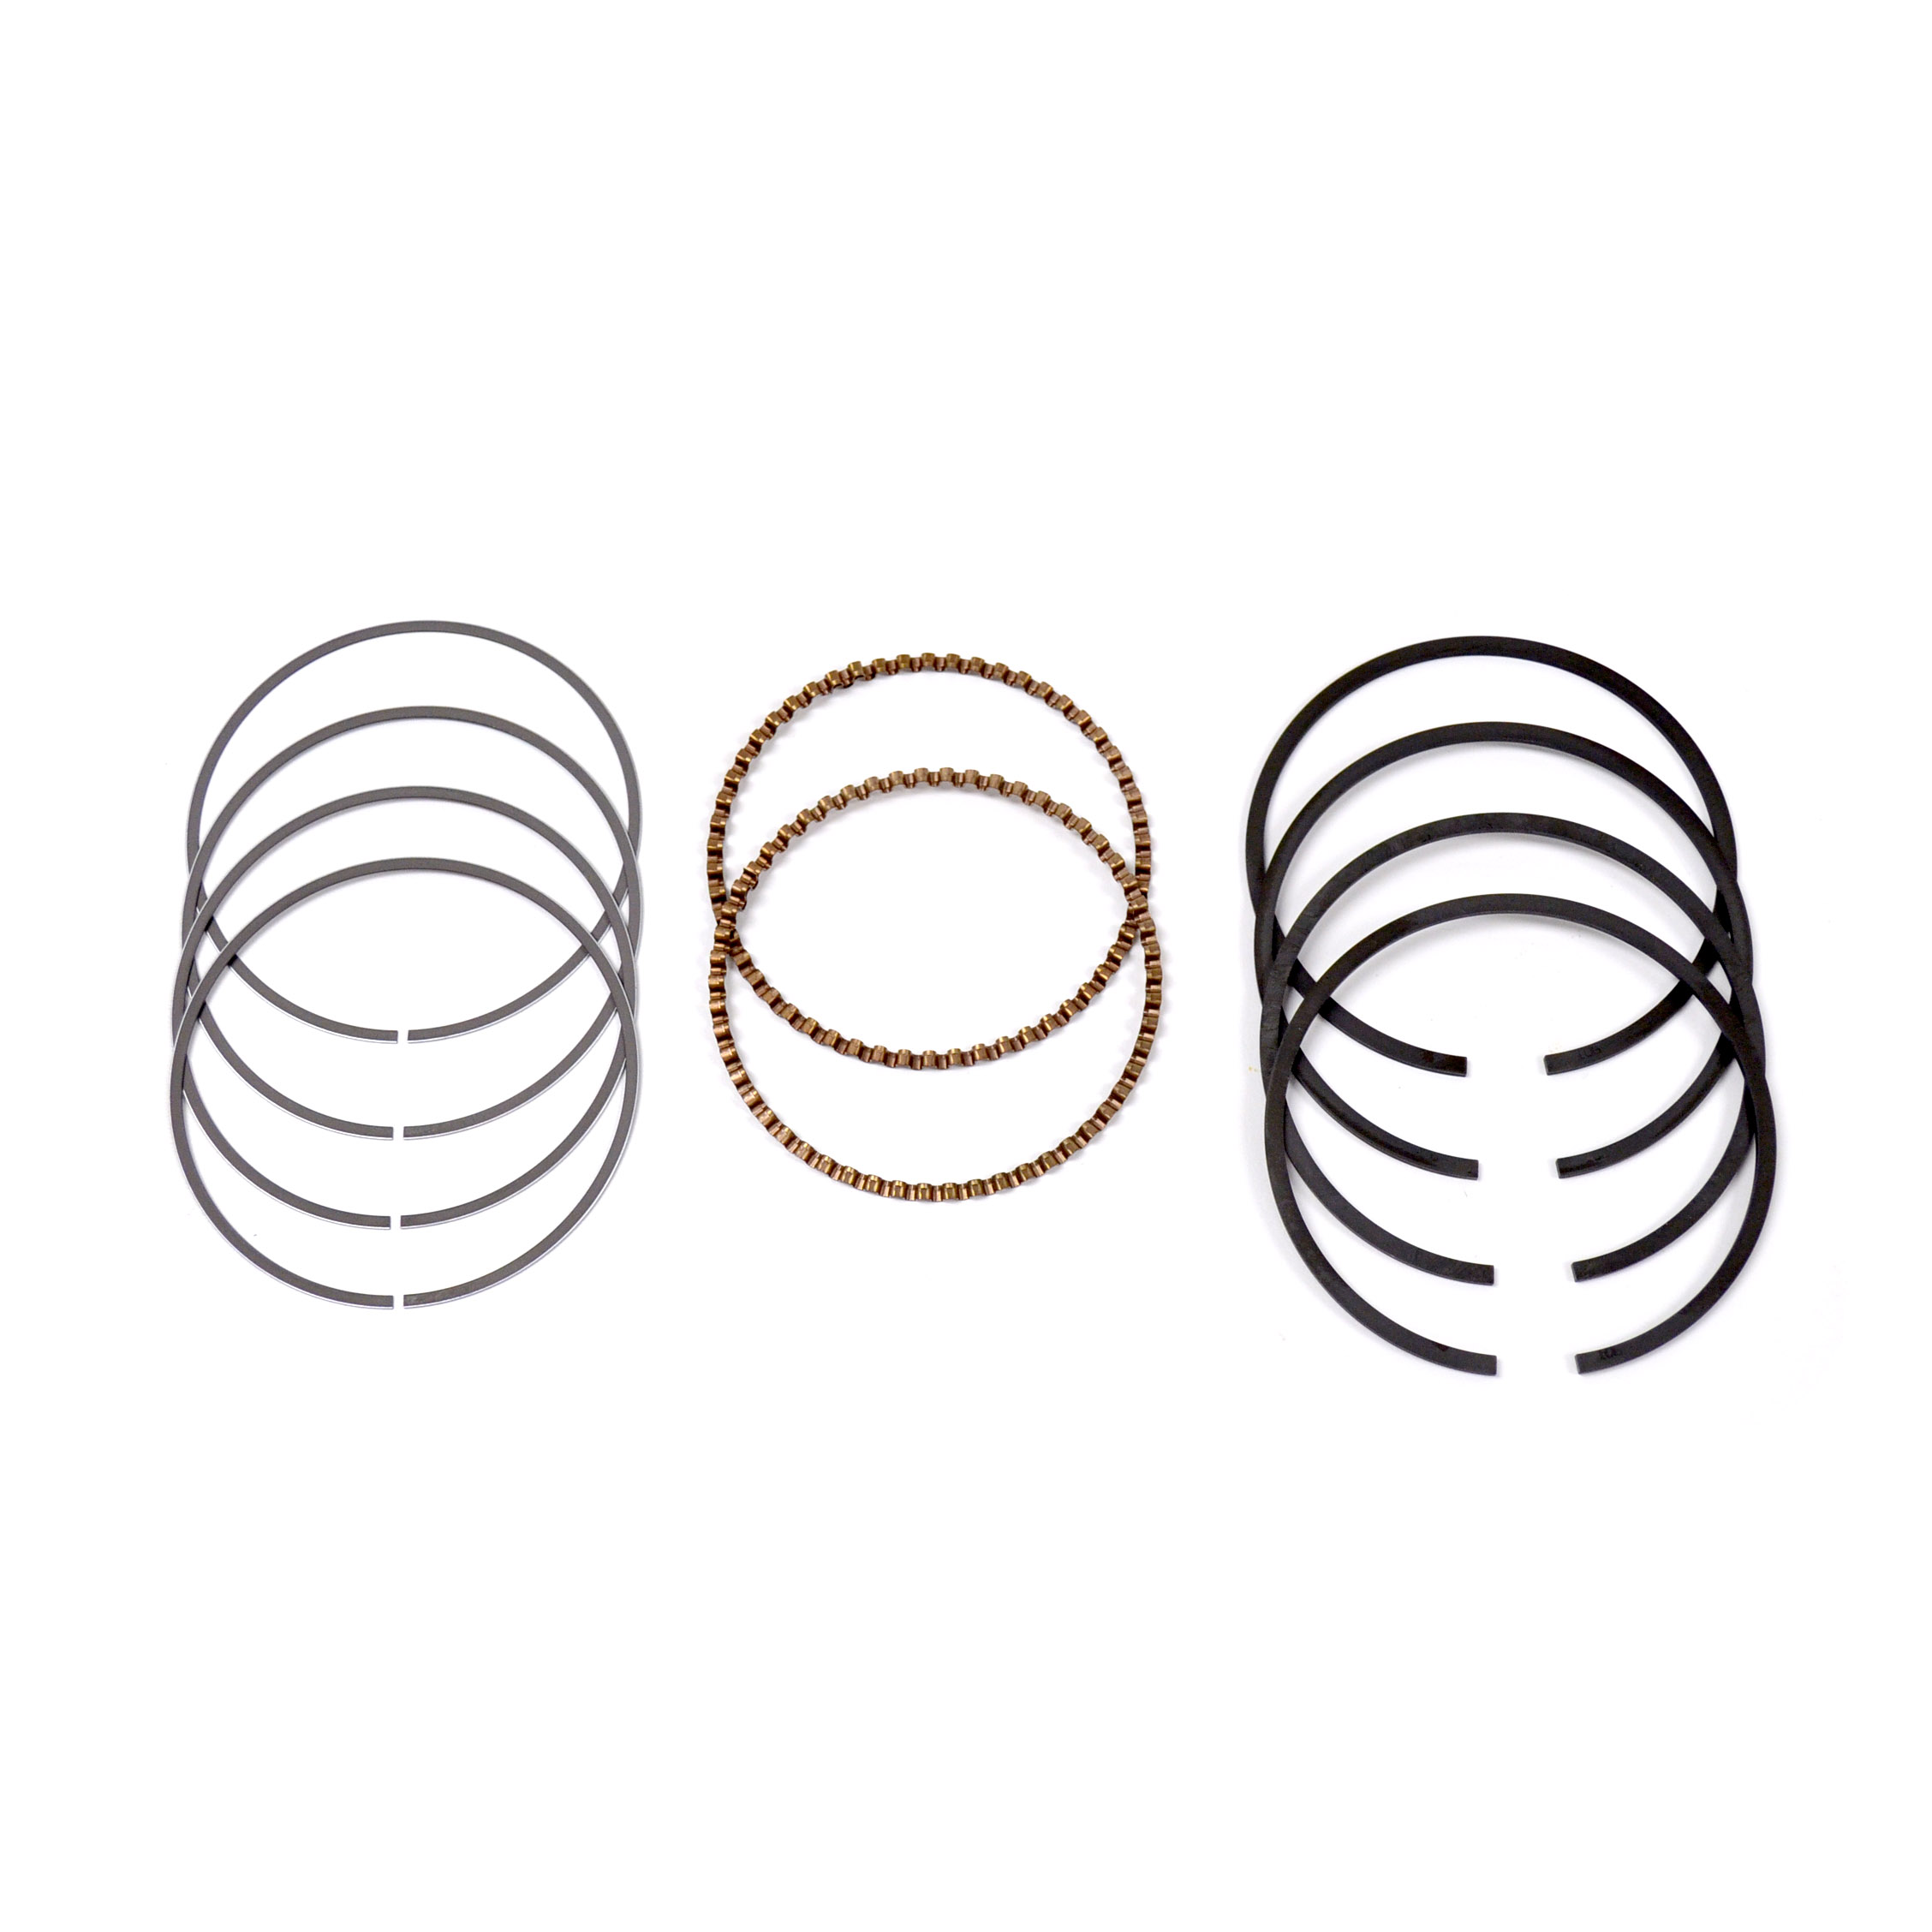 Triumph 750 Twins Tr7 T140 Riken Japan Piston Ring Set